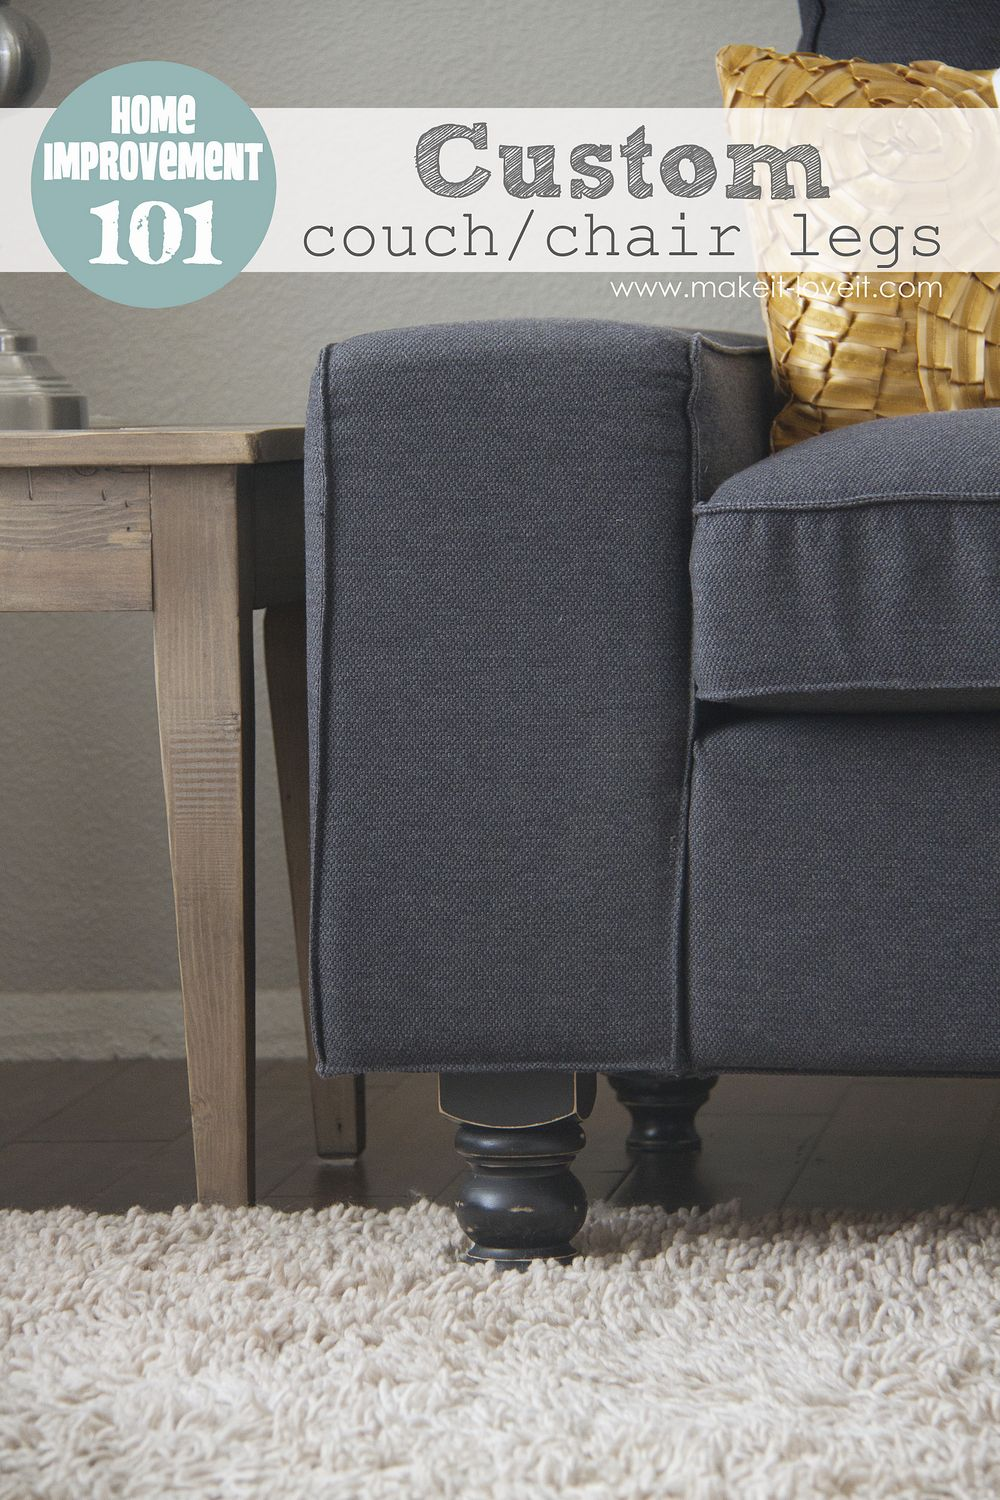 Bettsofa Kivik Create Your Own Custom Couch Or Arm Chair Legs Perfect For